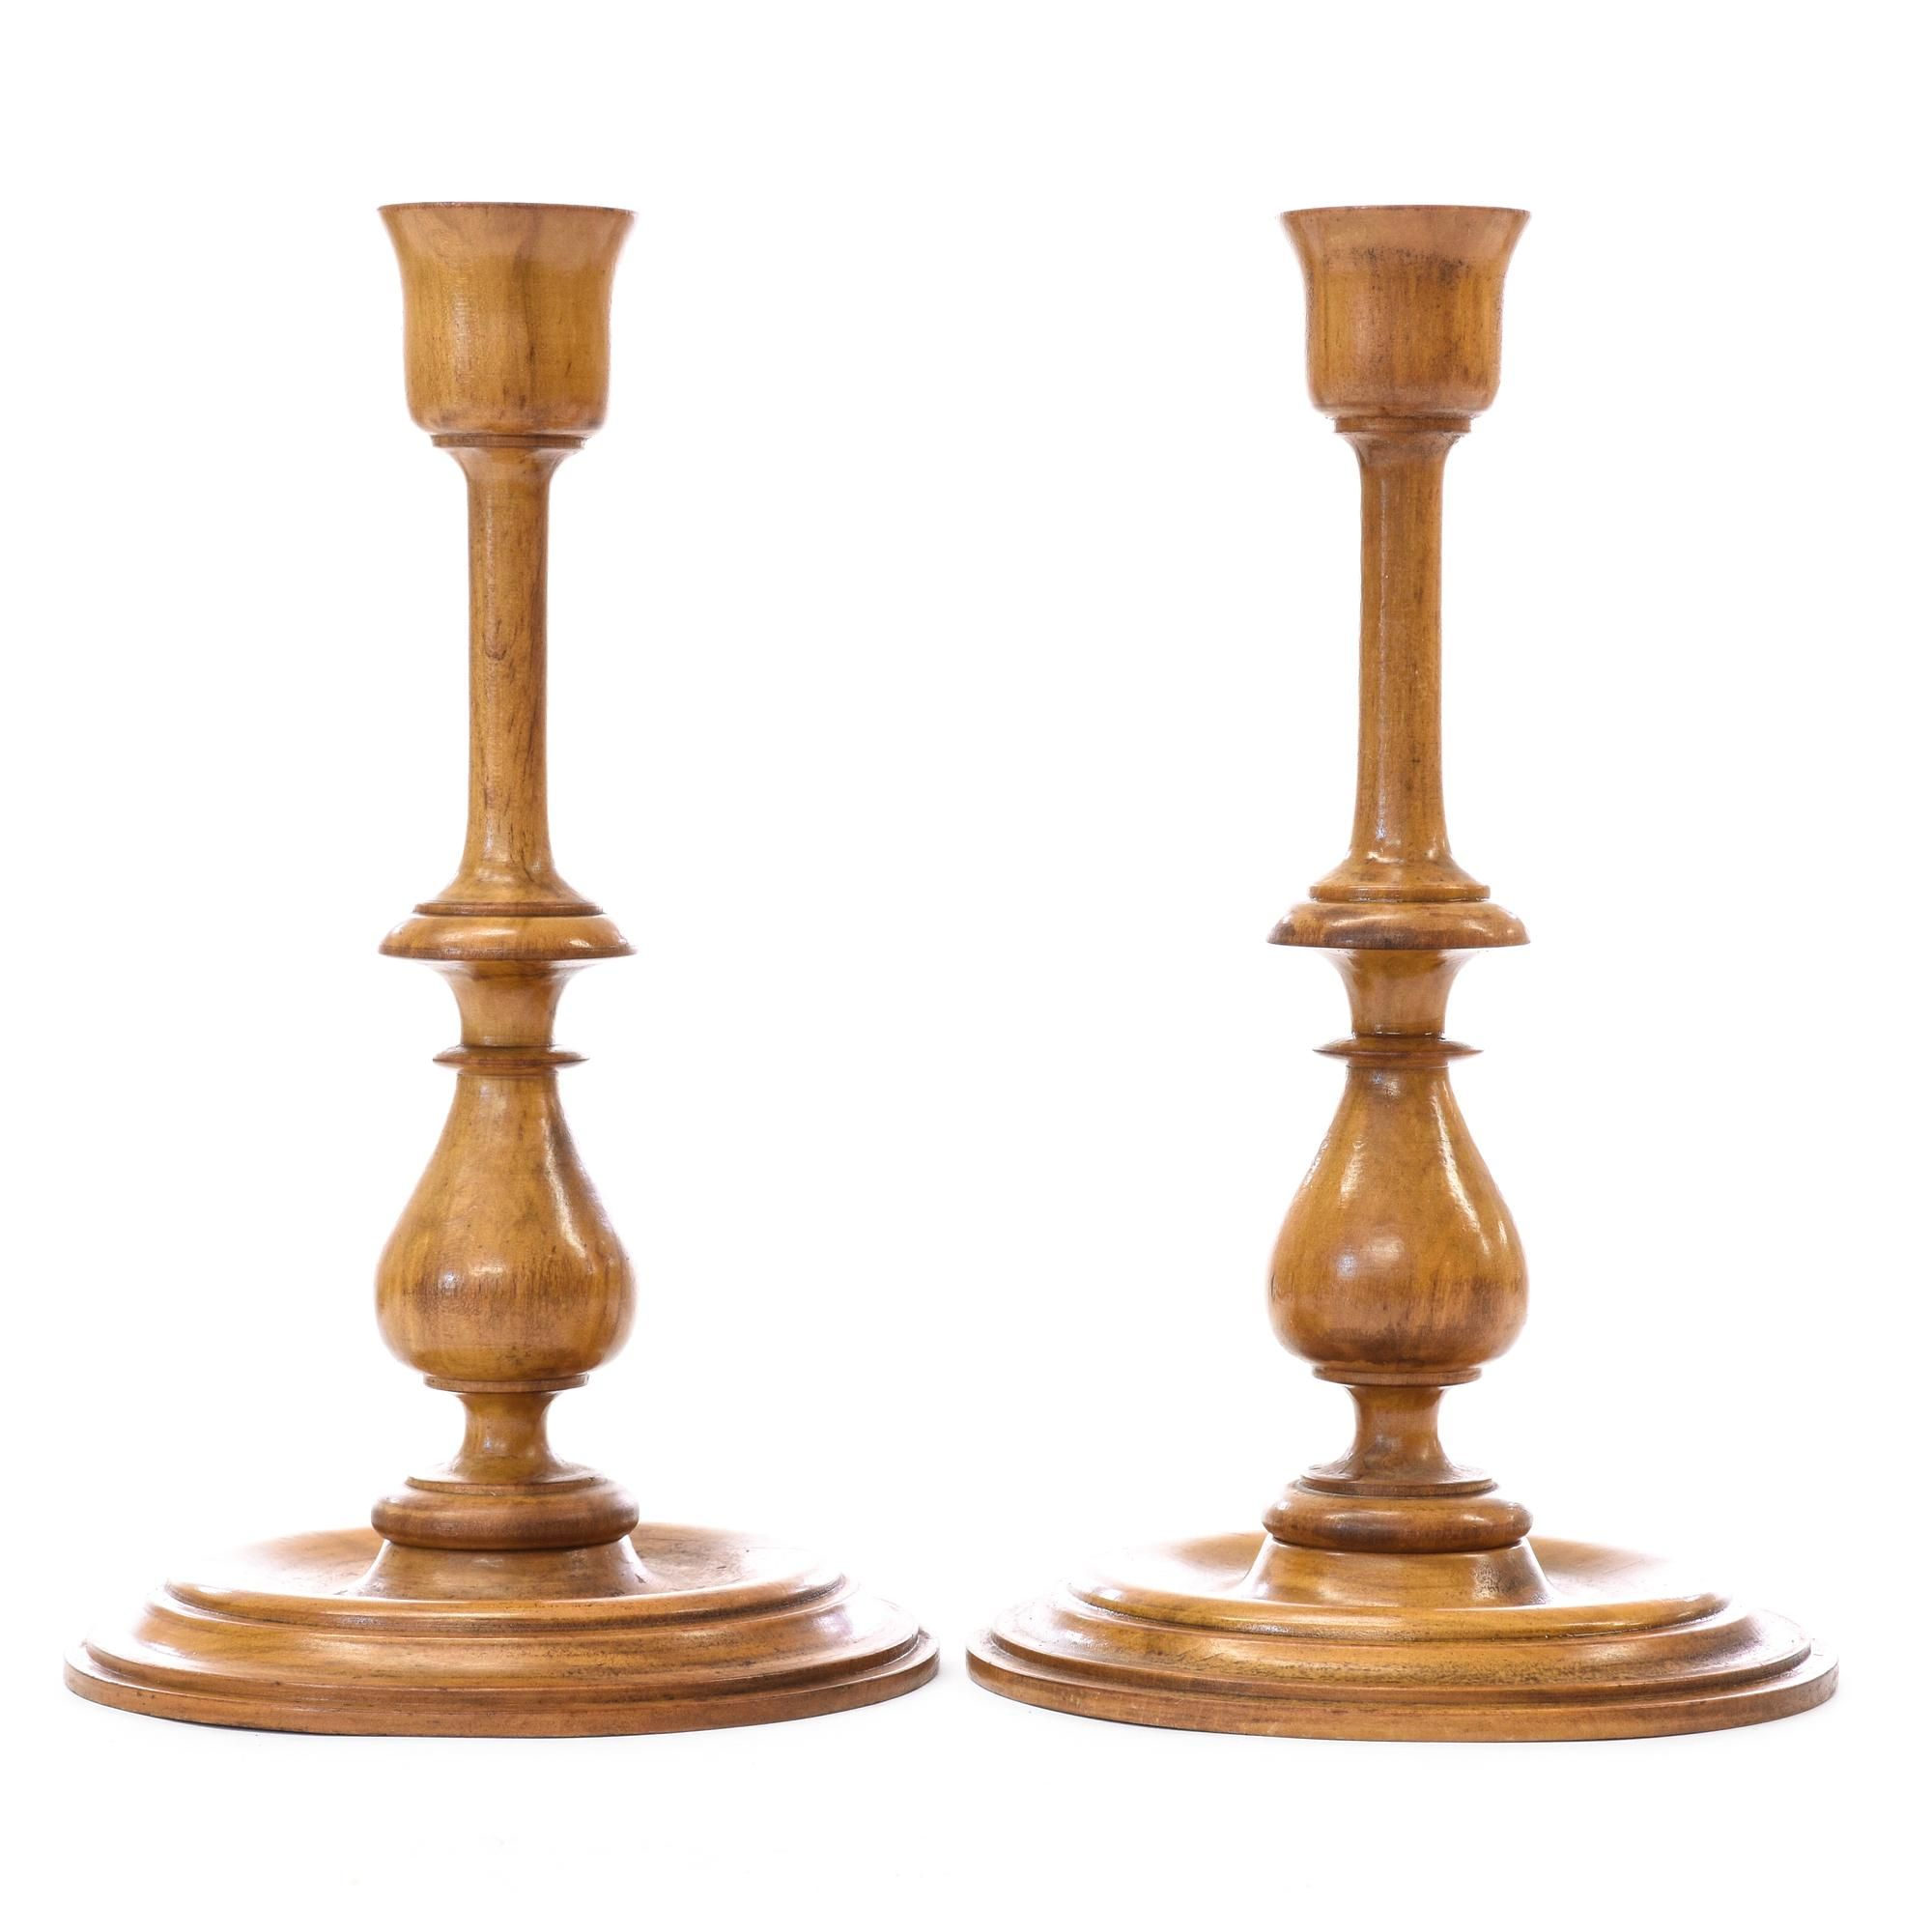 Pair Of Wood Turned Candlesticks   Loveseat Is The Best Way To Buy Vintage  Home Furniture In San Diego U0026 Los Angeles. Shabby Chic, Vintage, Mid  Century ...